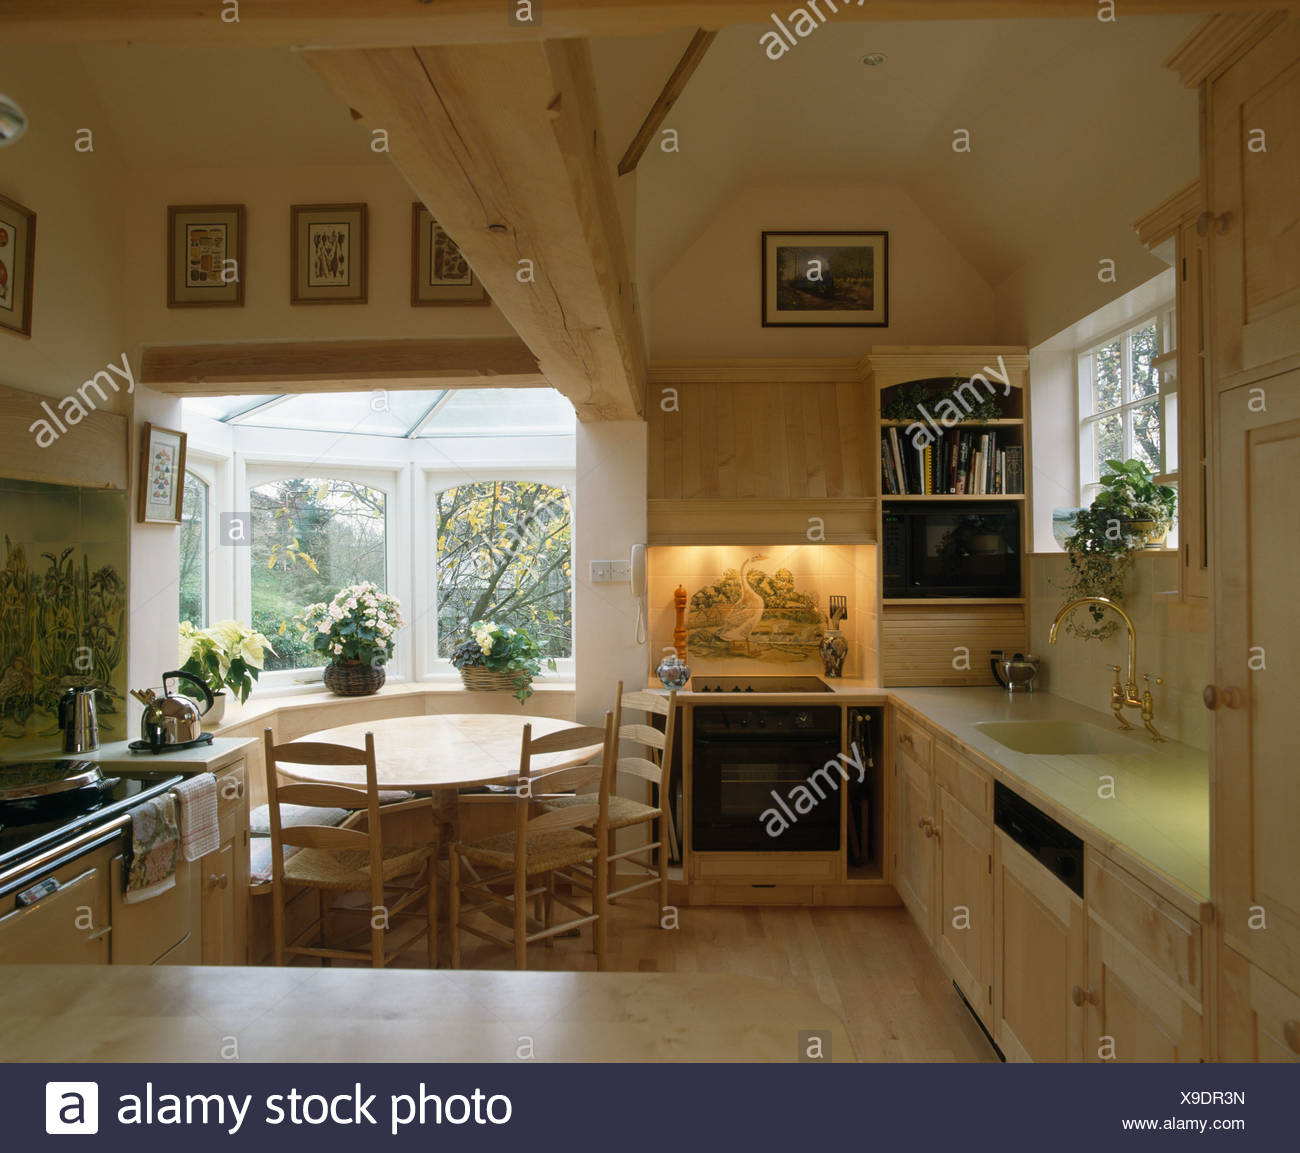 Small Country Kitchens Domestic Imágenes De Stock & Small Country ...